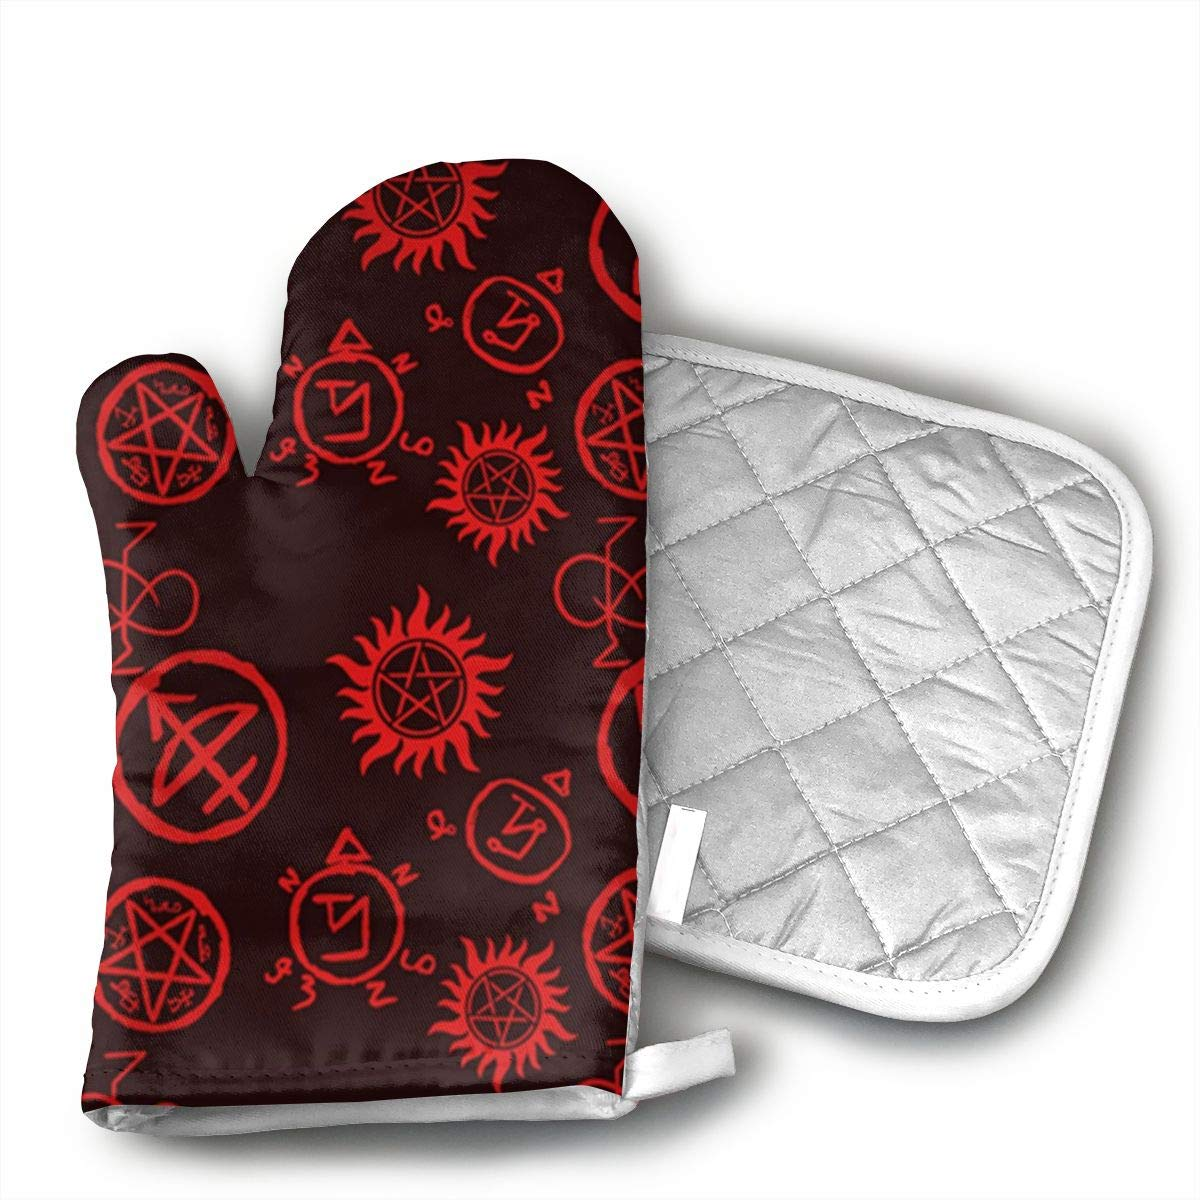 Wiqo9 Supernatural Symbols Red Oven Mitts and Pot Holders Kitchen Mitten Cooking Gloves,Cooking, Baking, BBQ.